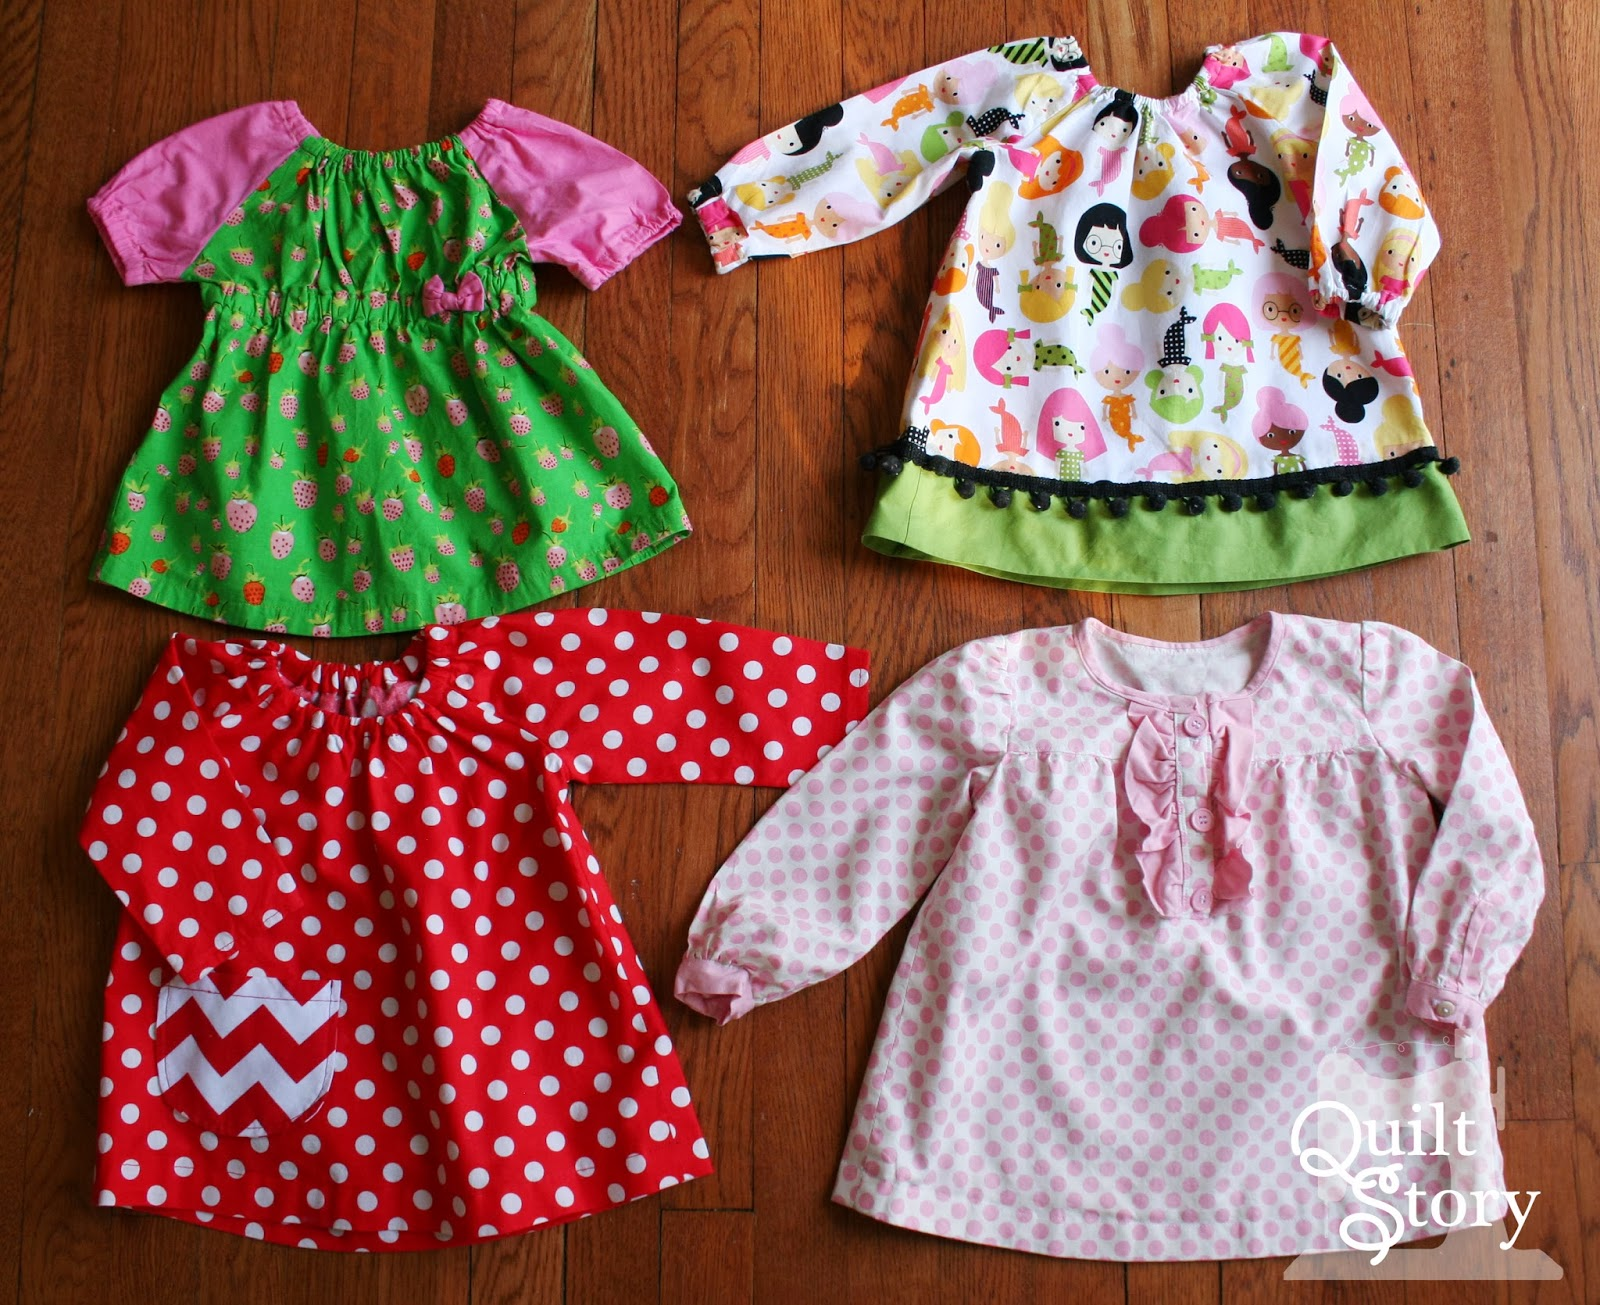 Quilt Story Darling Clothes for Lucy Lulu